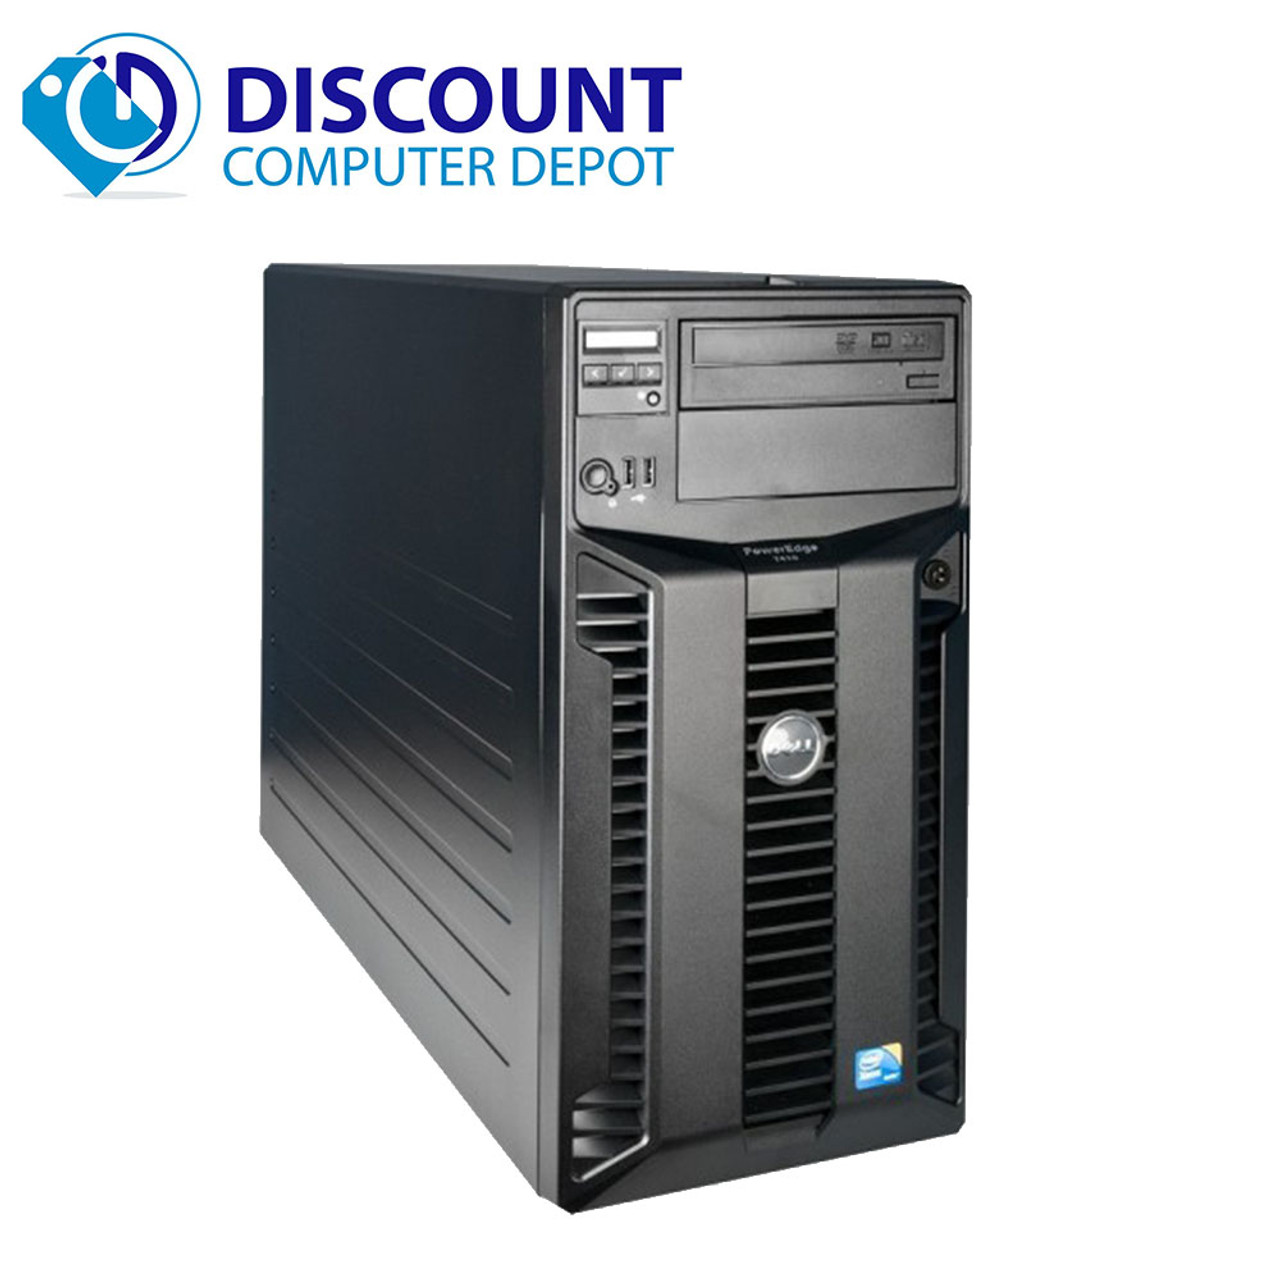 Dell PowerEdge T310 Workstation Server Xeon 2 4GHz 8GB Dual 500GB HDD's No  OS and WIFI